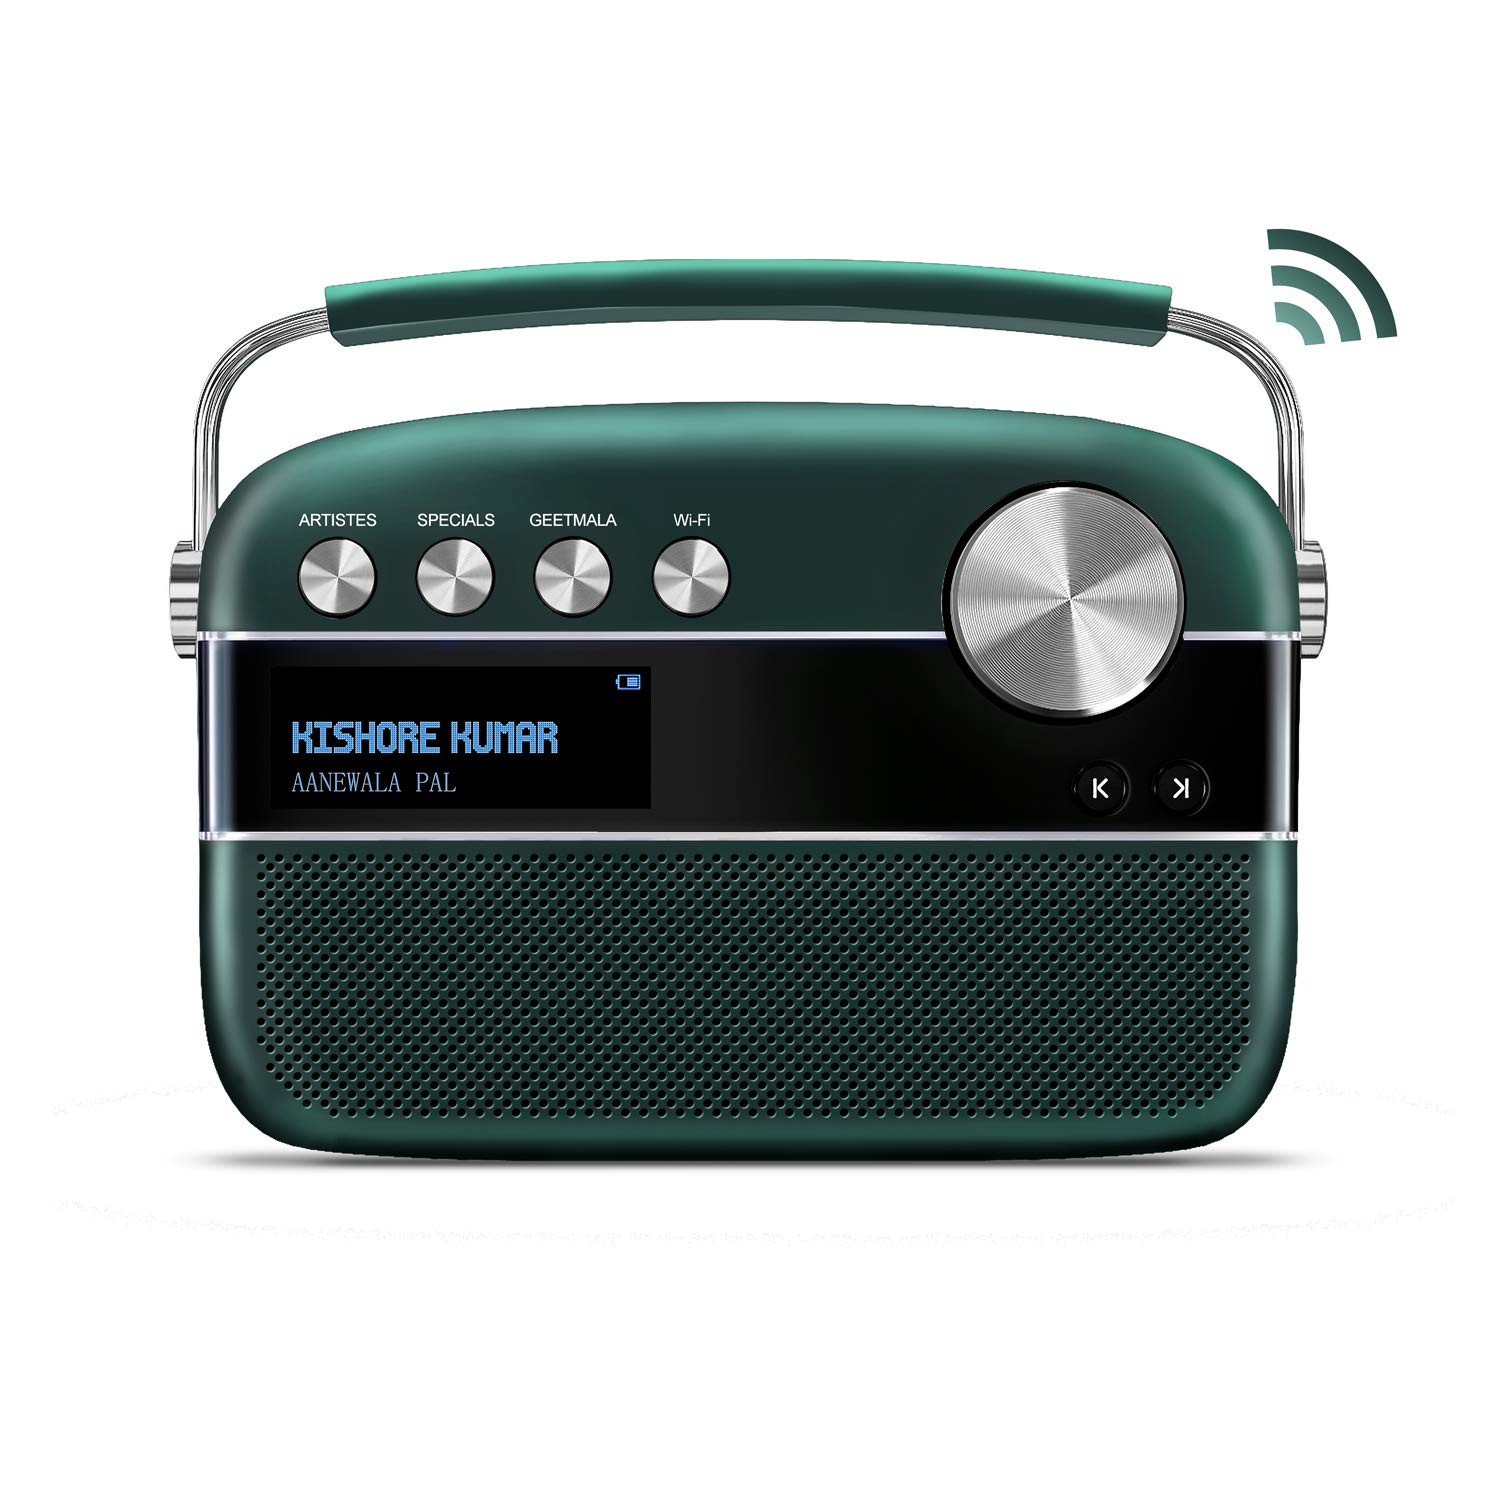 Saregama Carvaan 2.0 Portable Digital Music Player (with 20,000 Songs) (with WiFi, Green) by Saregama